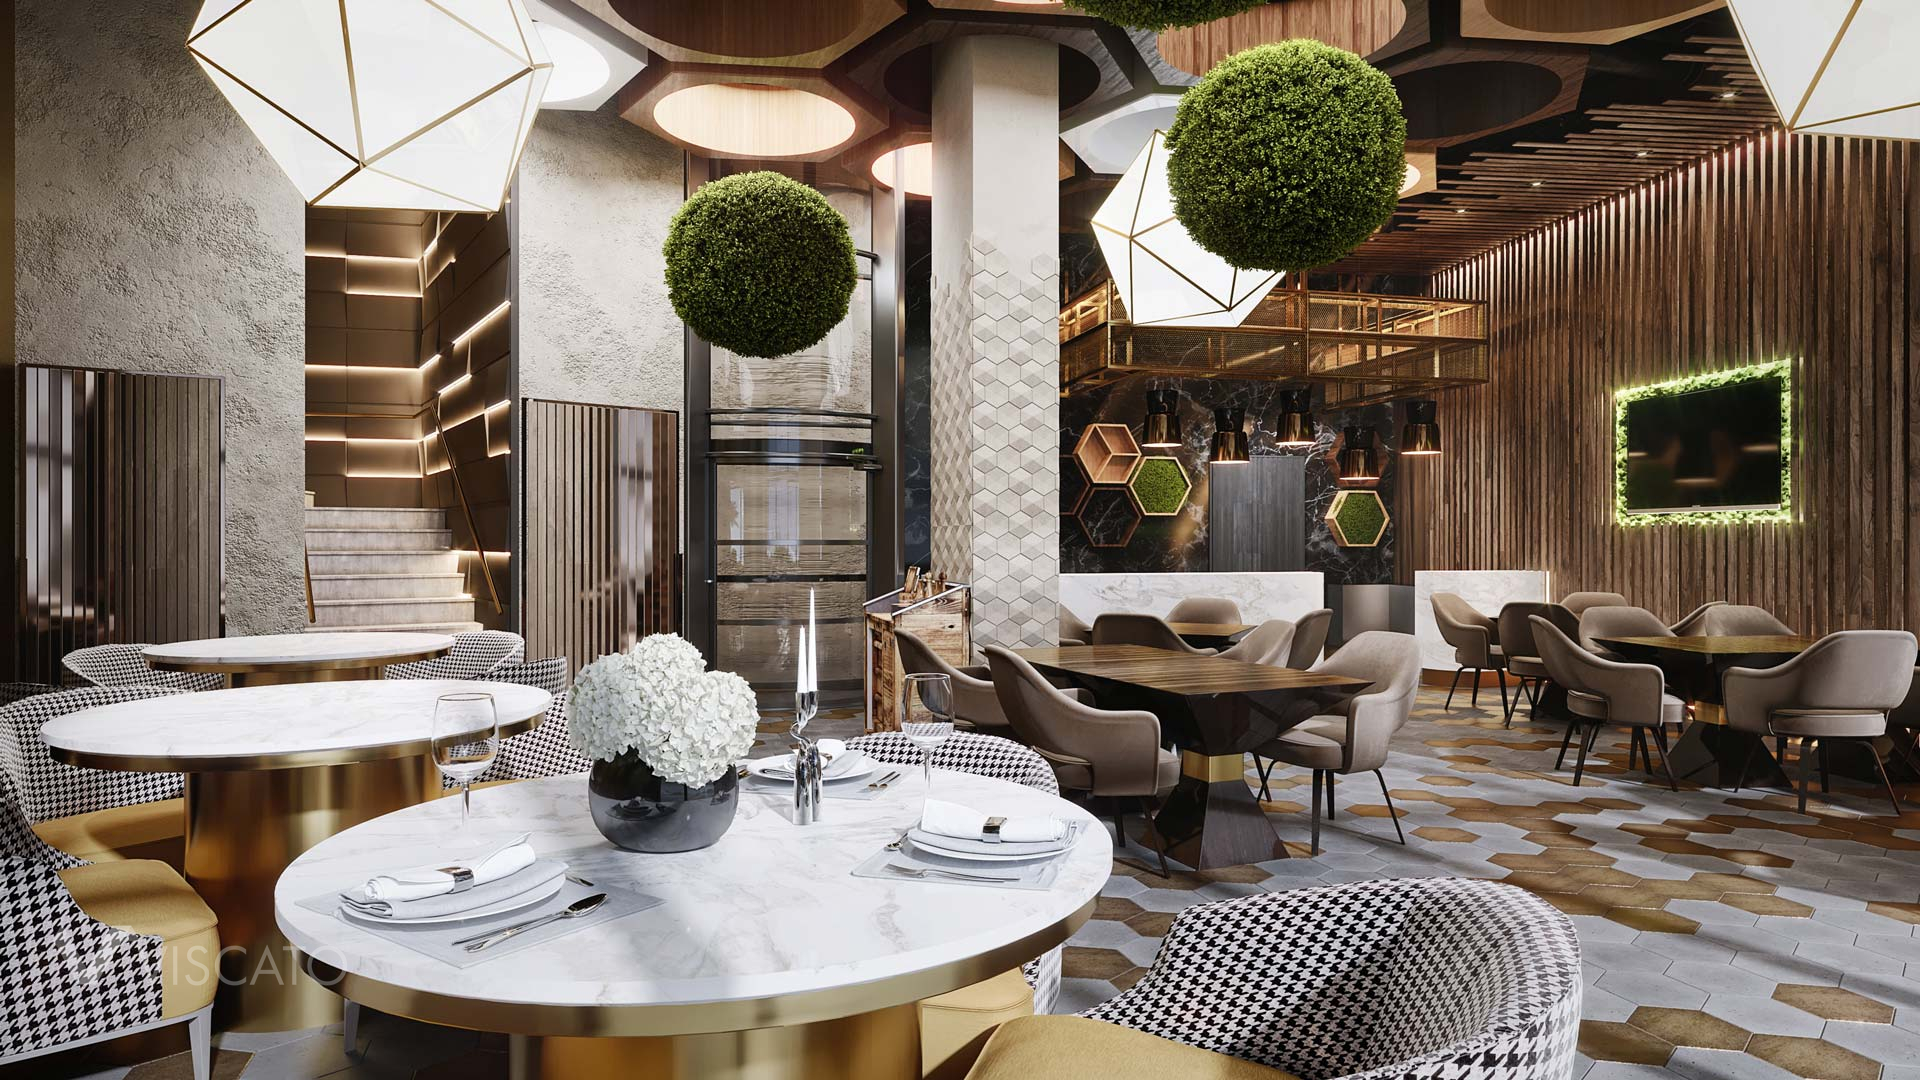 fancy interiors of a modern restaurant, 3d render